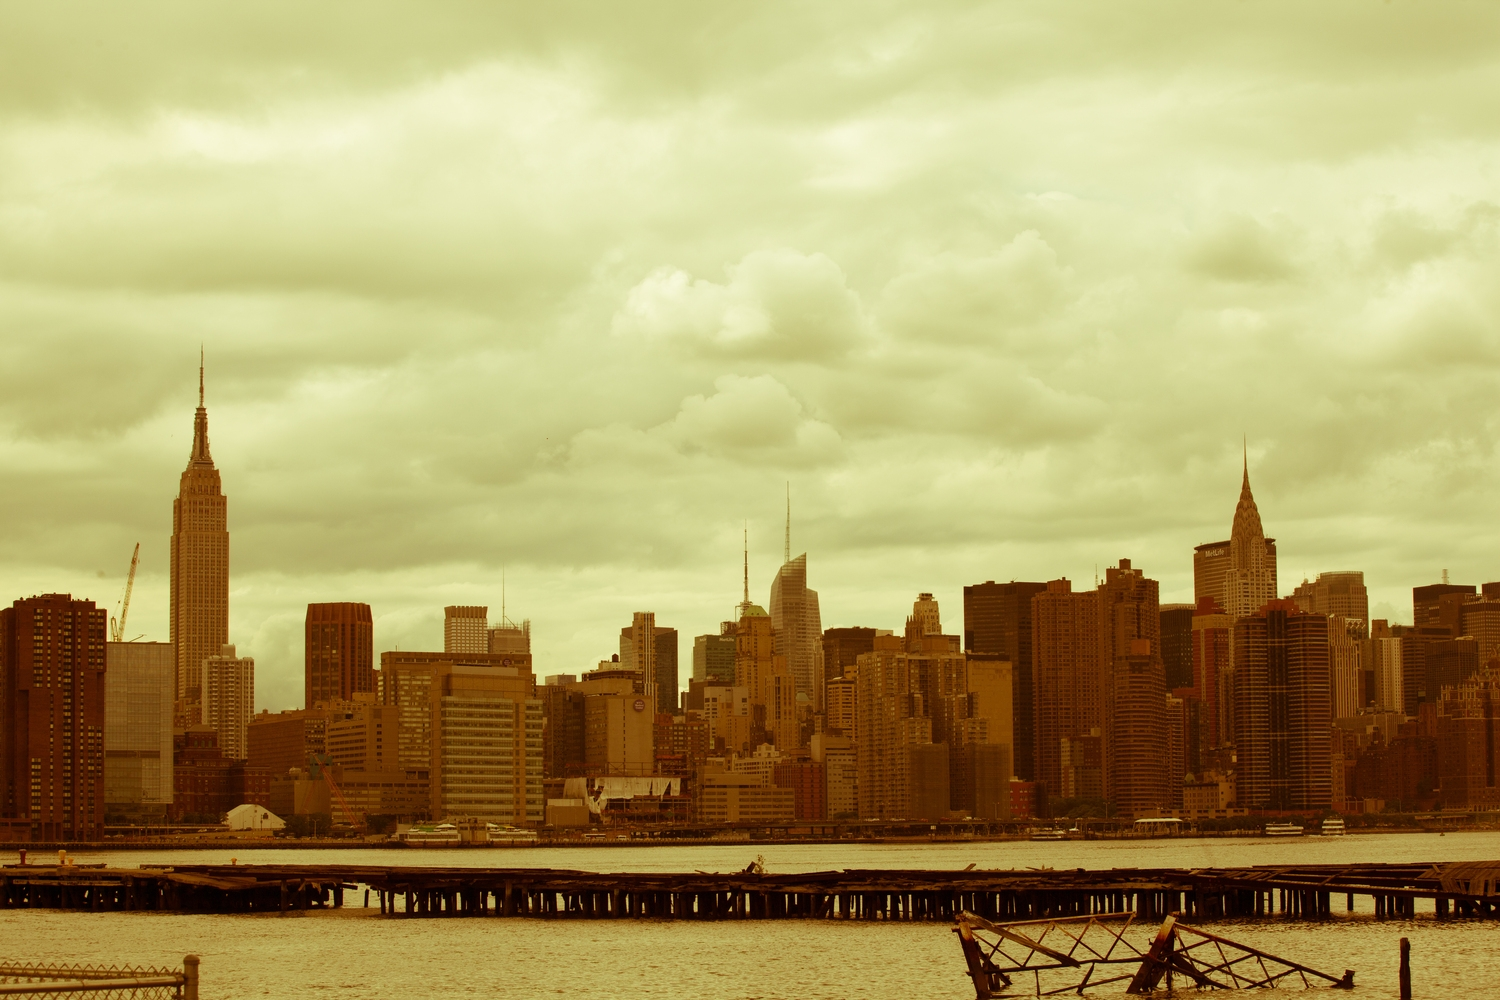 Yellowpoint Brooklyn | Captured from the piers in Greenpoint, Brooklyn in New York City, NY.